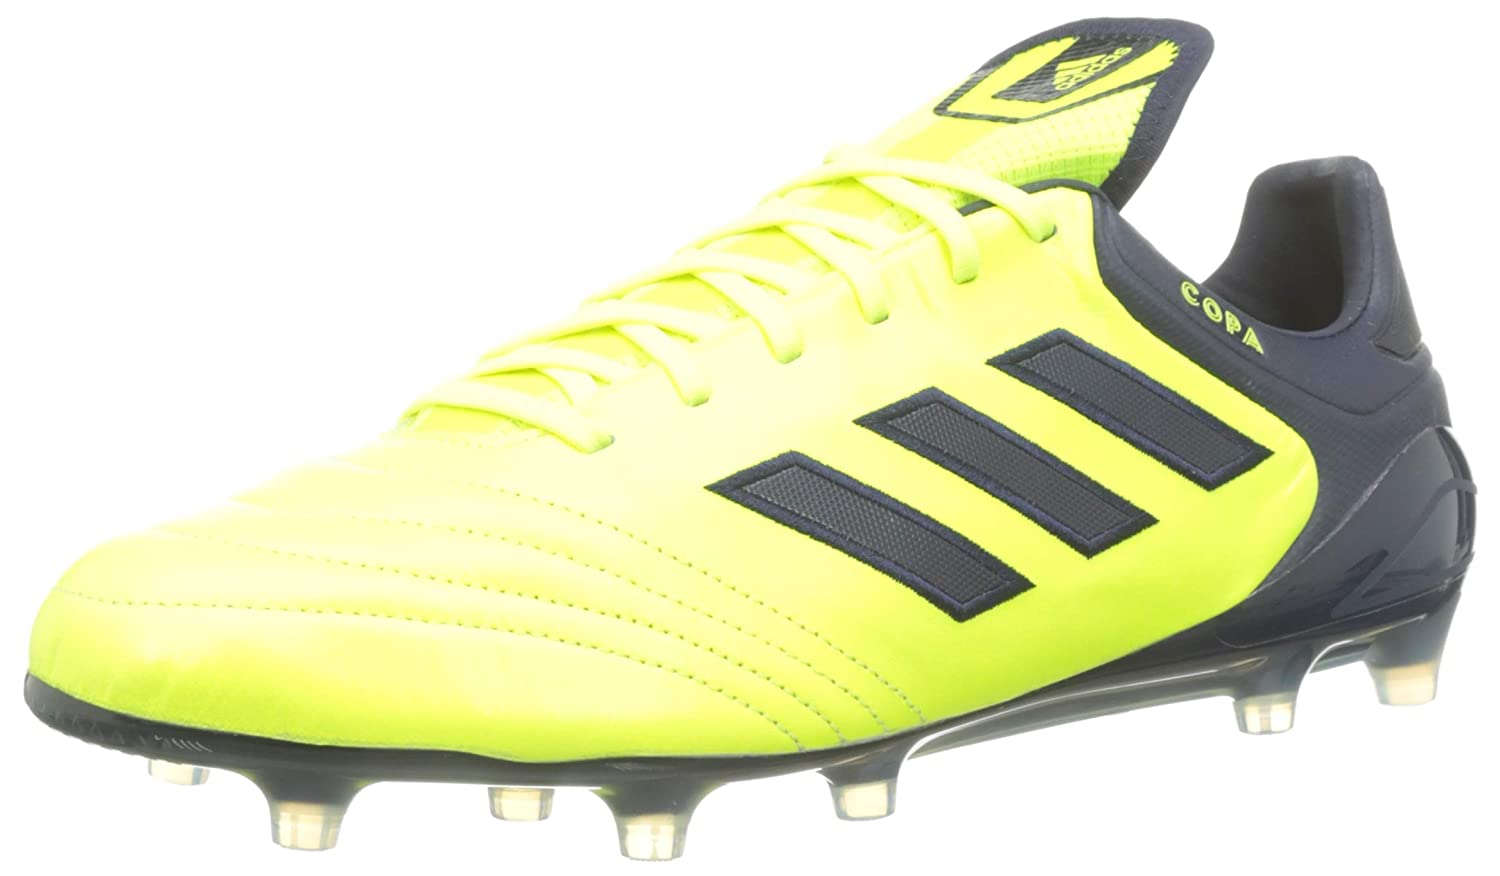 85c7f0827306c4 Amazon.com: adidas Performance Mens Copa 17.1 Firm Ground Soccer ...